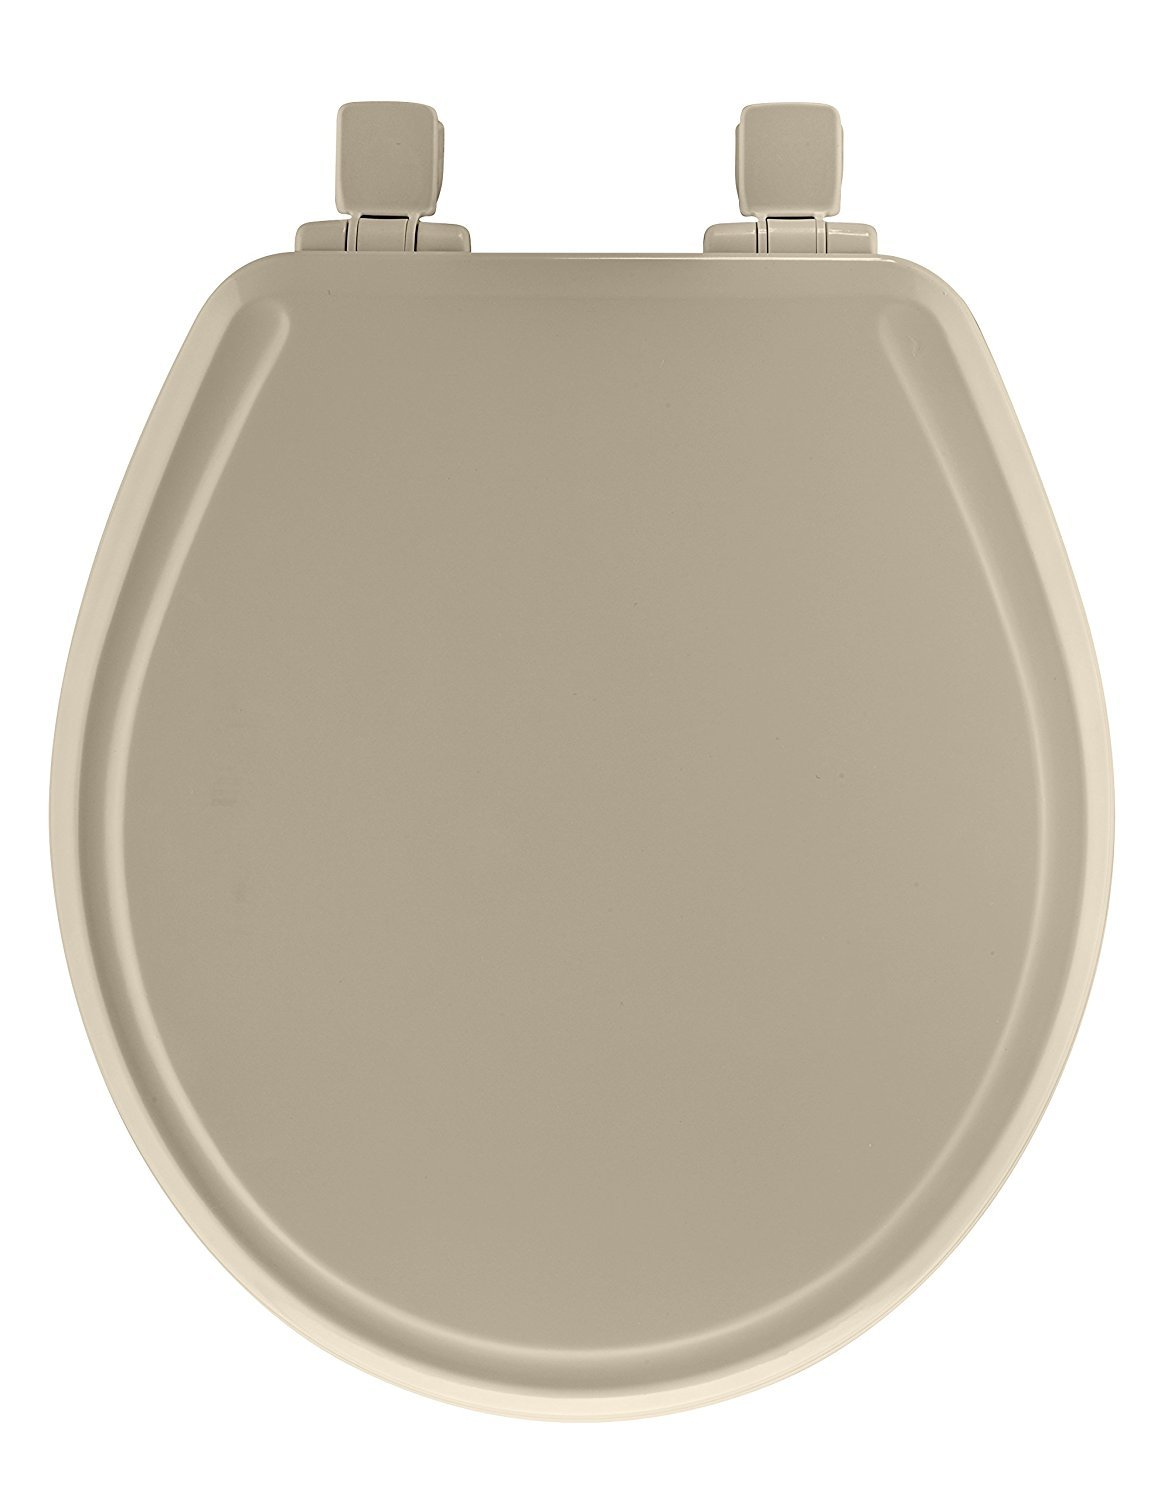 Cool Mayfair 48Slowa 006 Toilet Seat Will Slow Close Never Loosen And Easily Remove Round Durable Enameled Wood Bone Machost Co Dining Chair Design Ideas Machostcouk